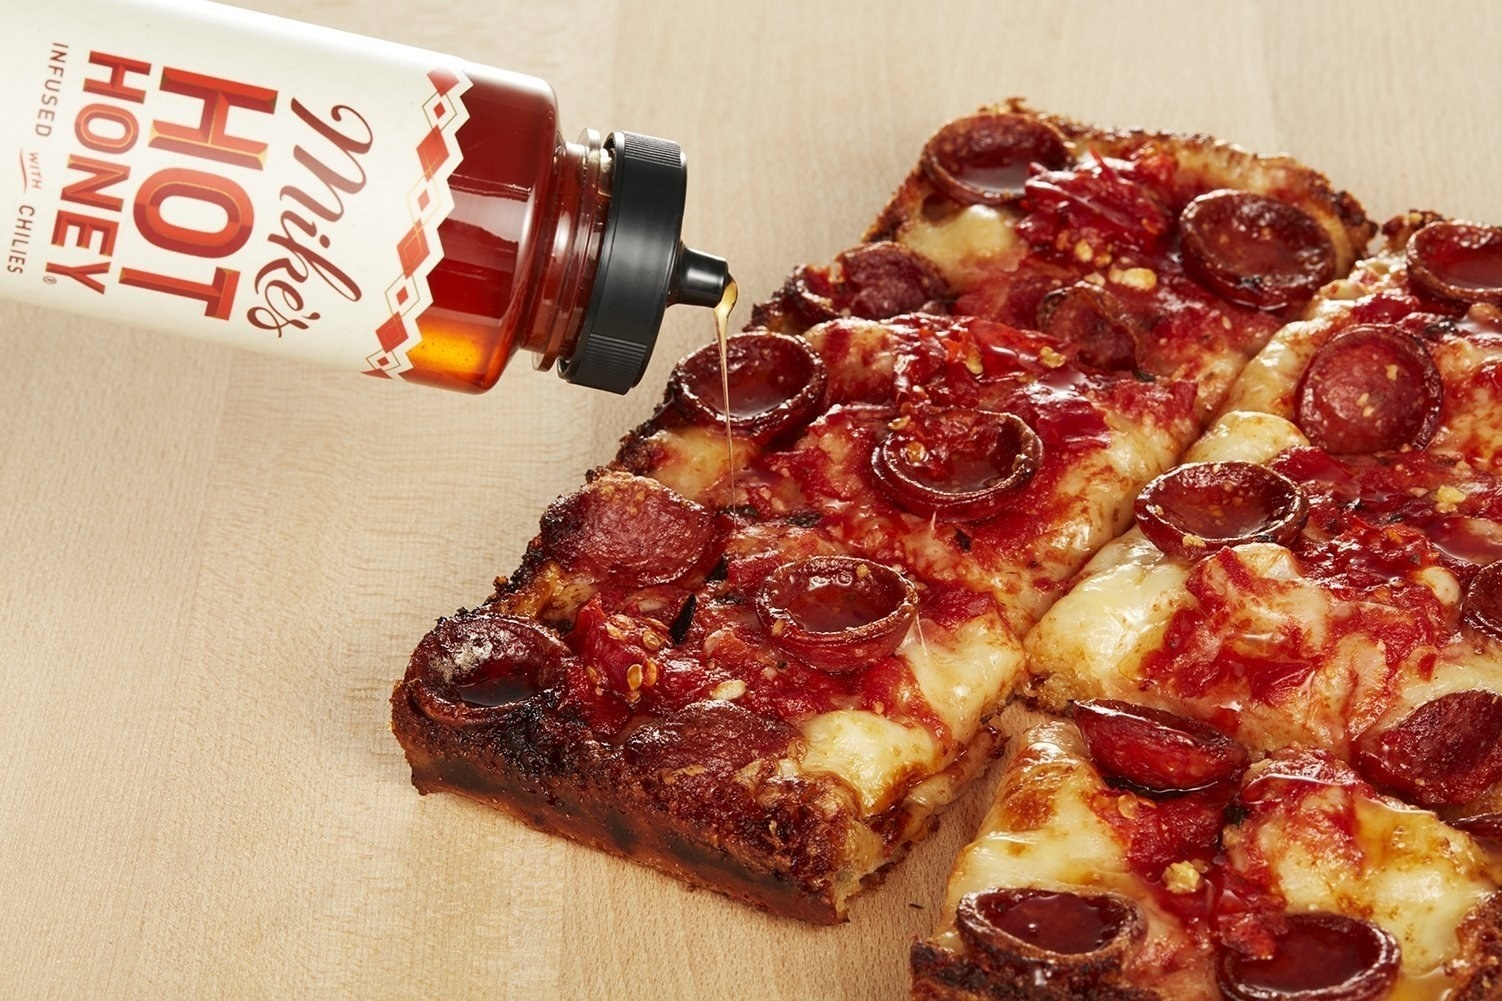 Mike's Hot Honey drizzled over pizza